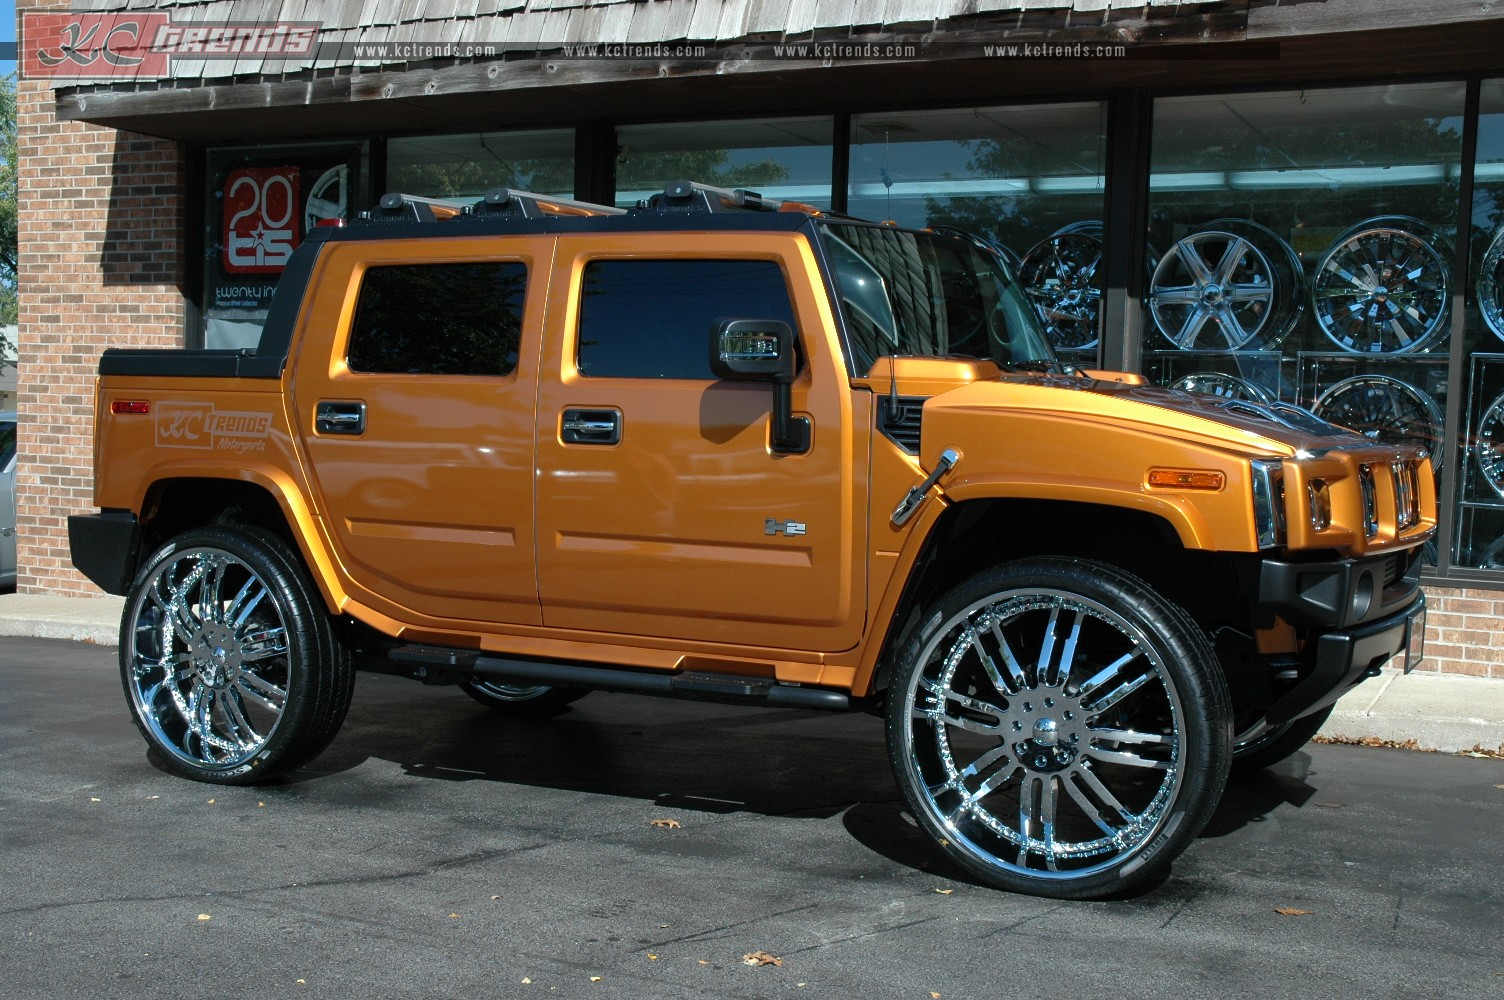 30 Inch Rims On Hummer H2 : Hummer h on inch giovanna caracass rims only the